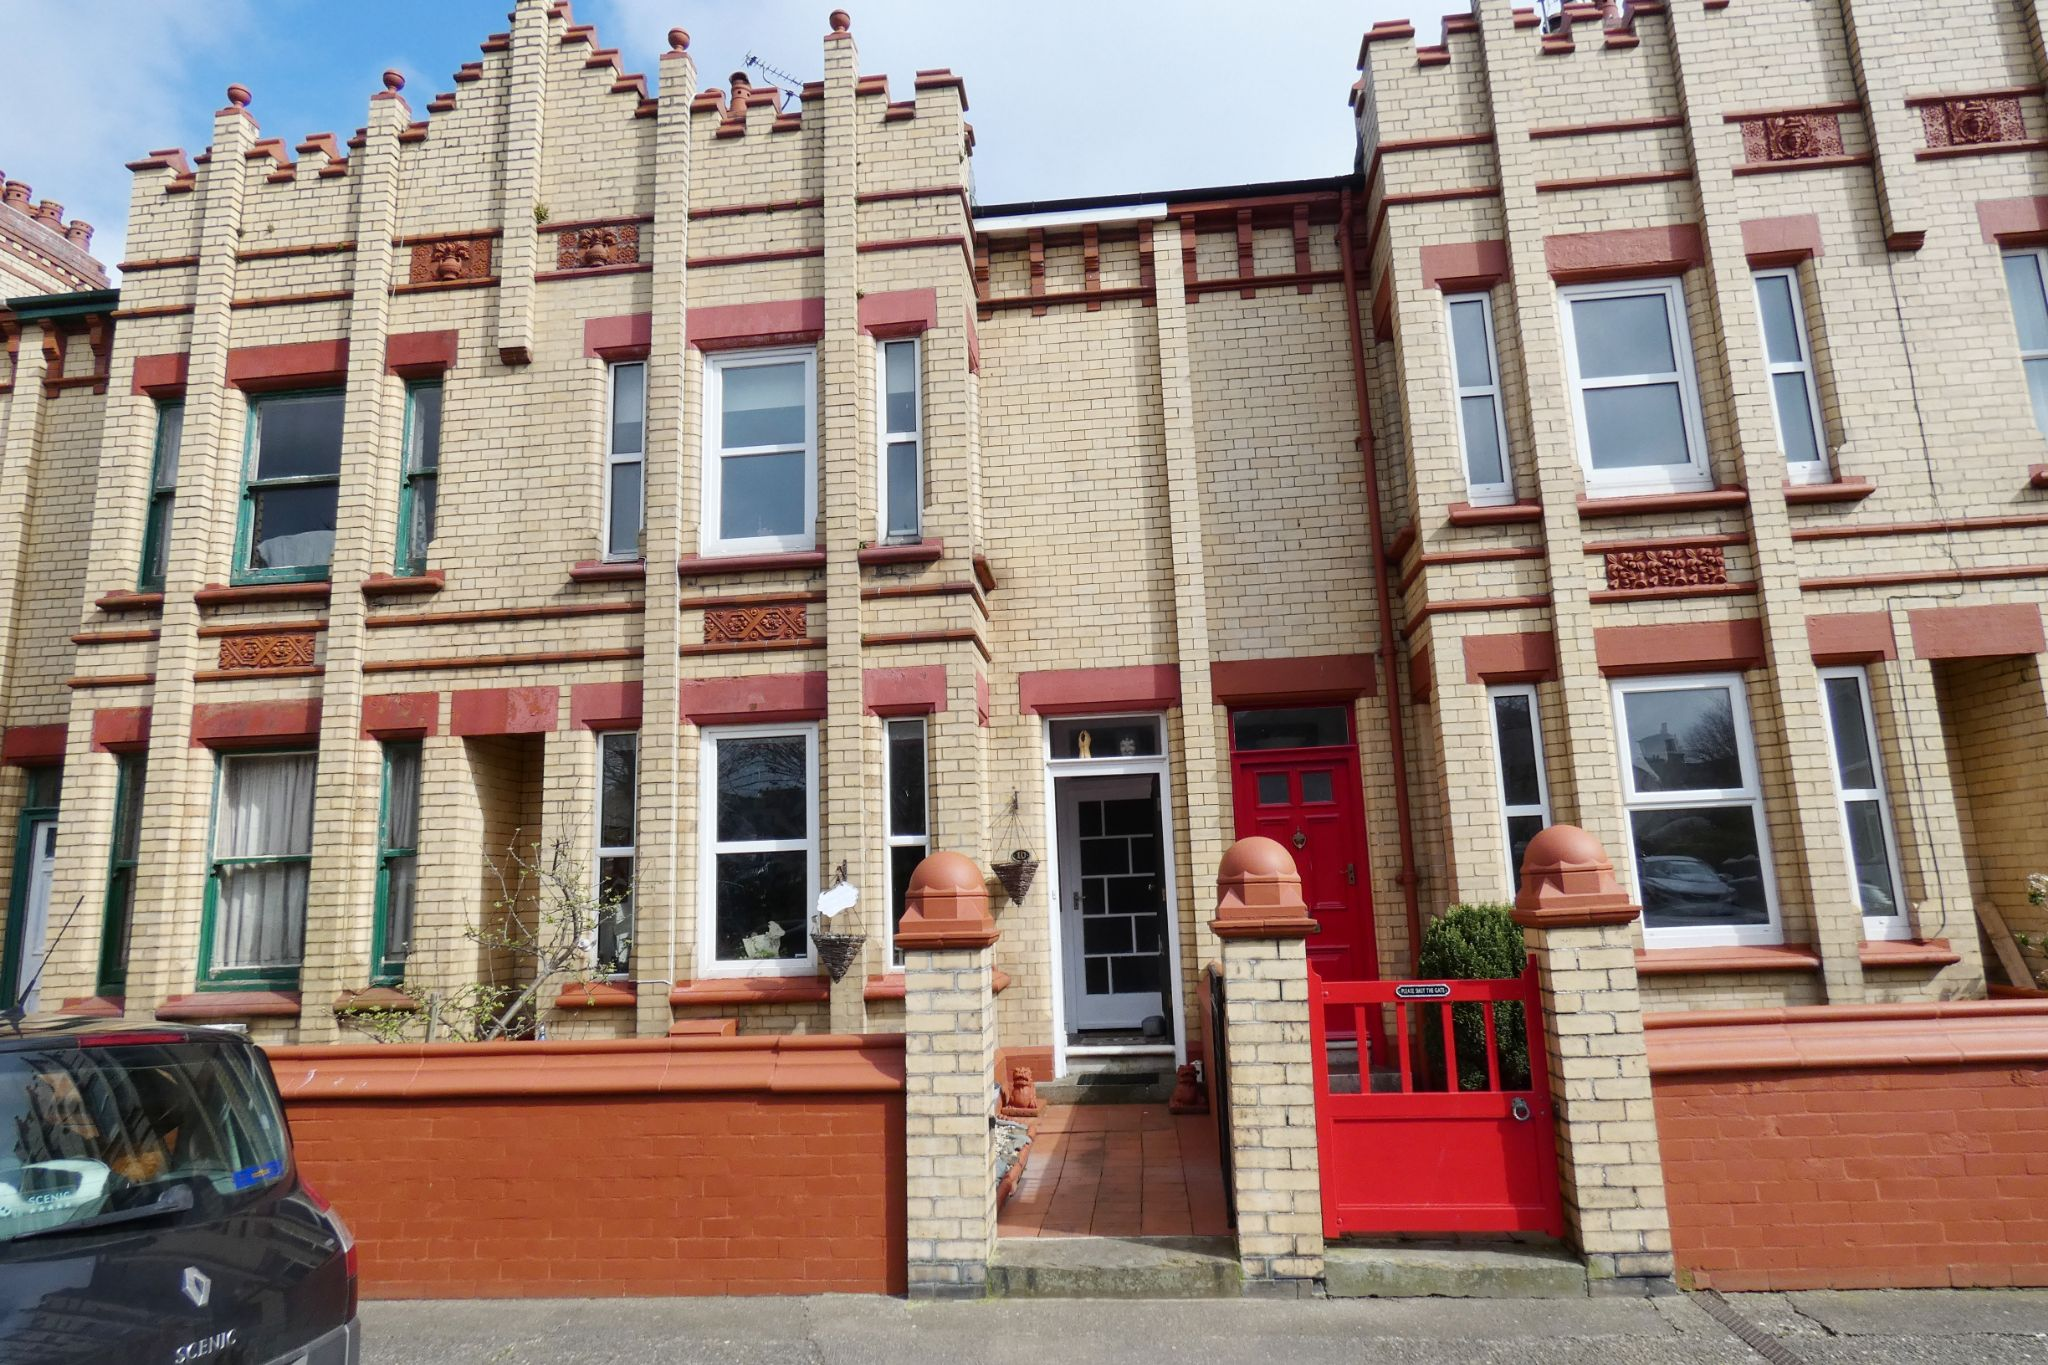 4 bedroom mid terraced house For Sale in Douglas - Photograph 1